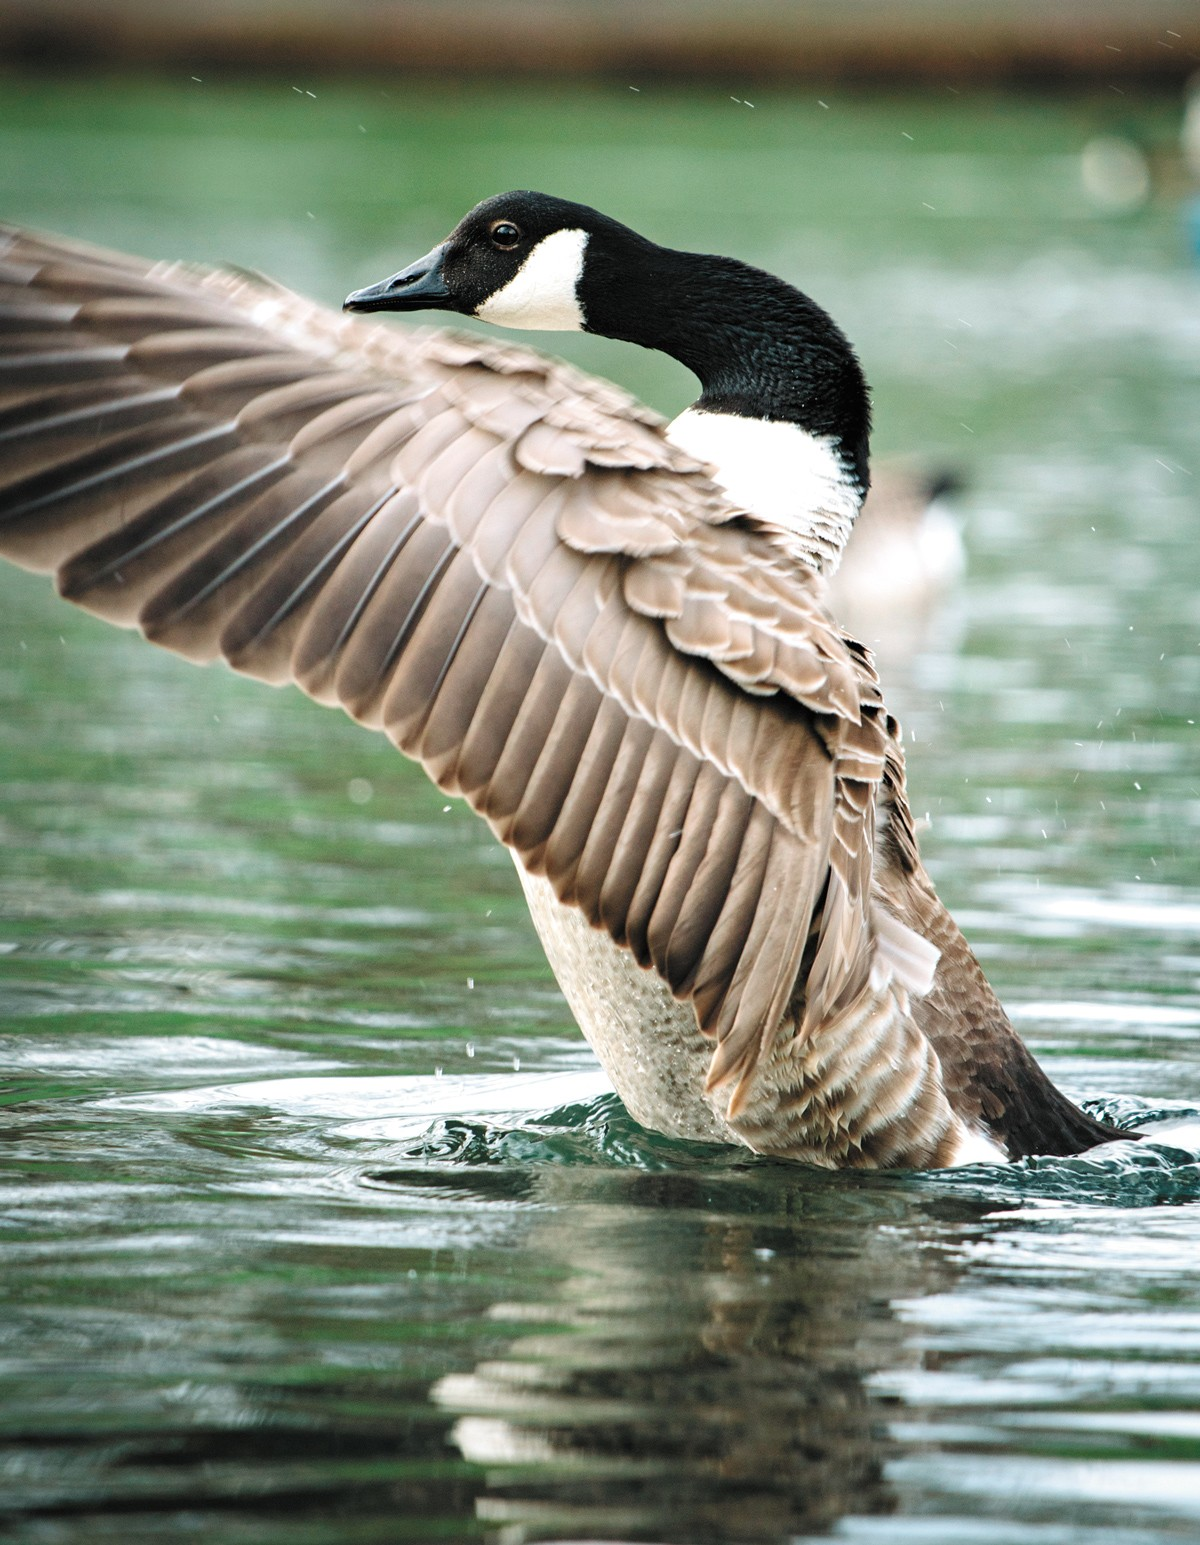 Canada geese populations have skyrocketed in North America since the 1950s.